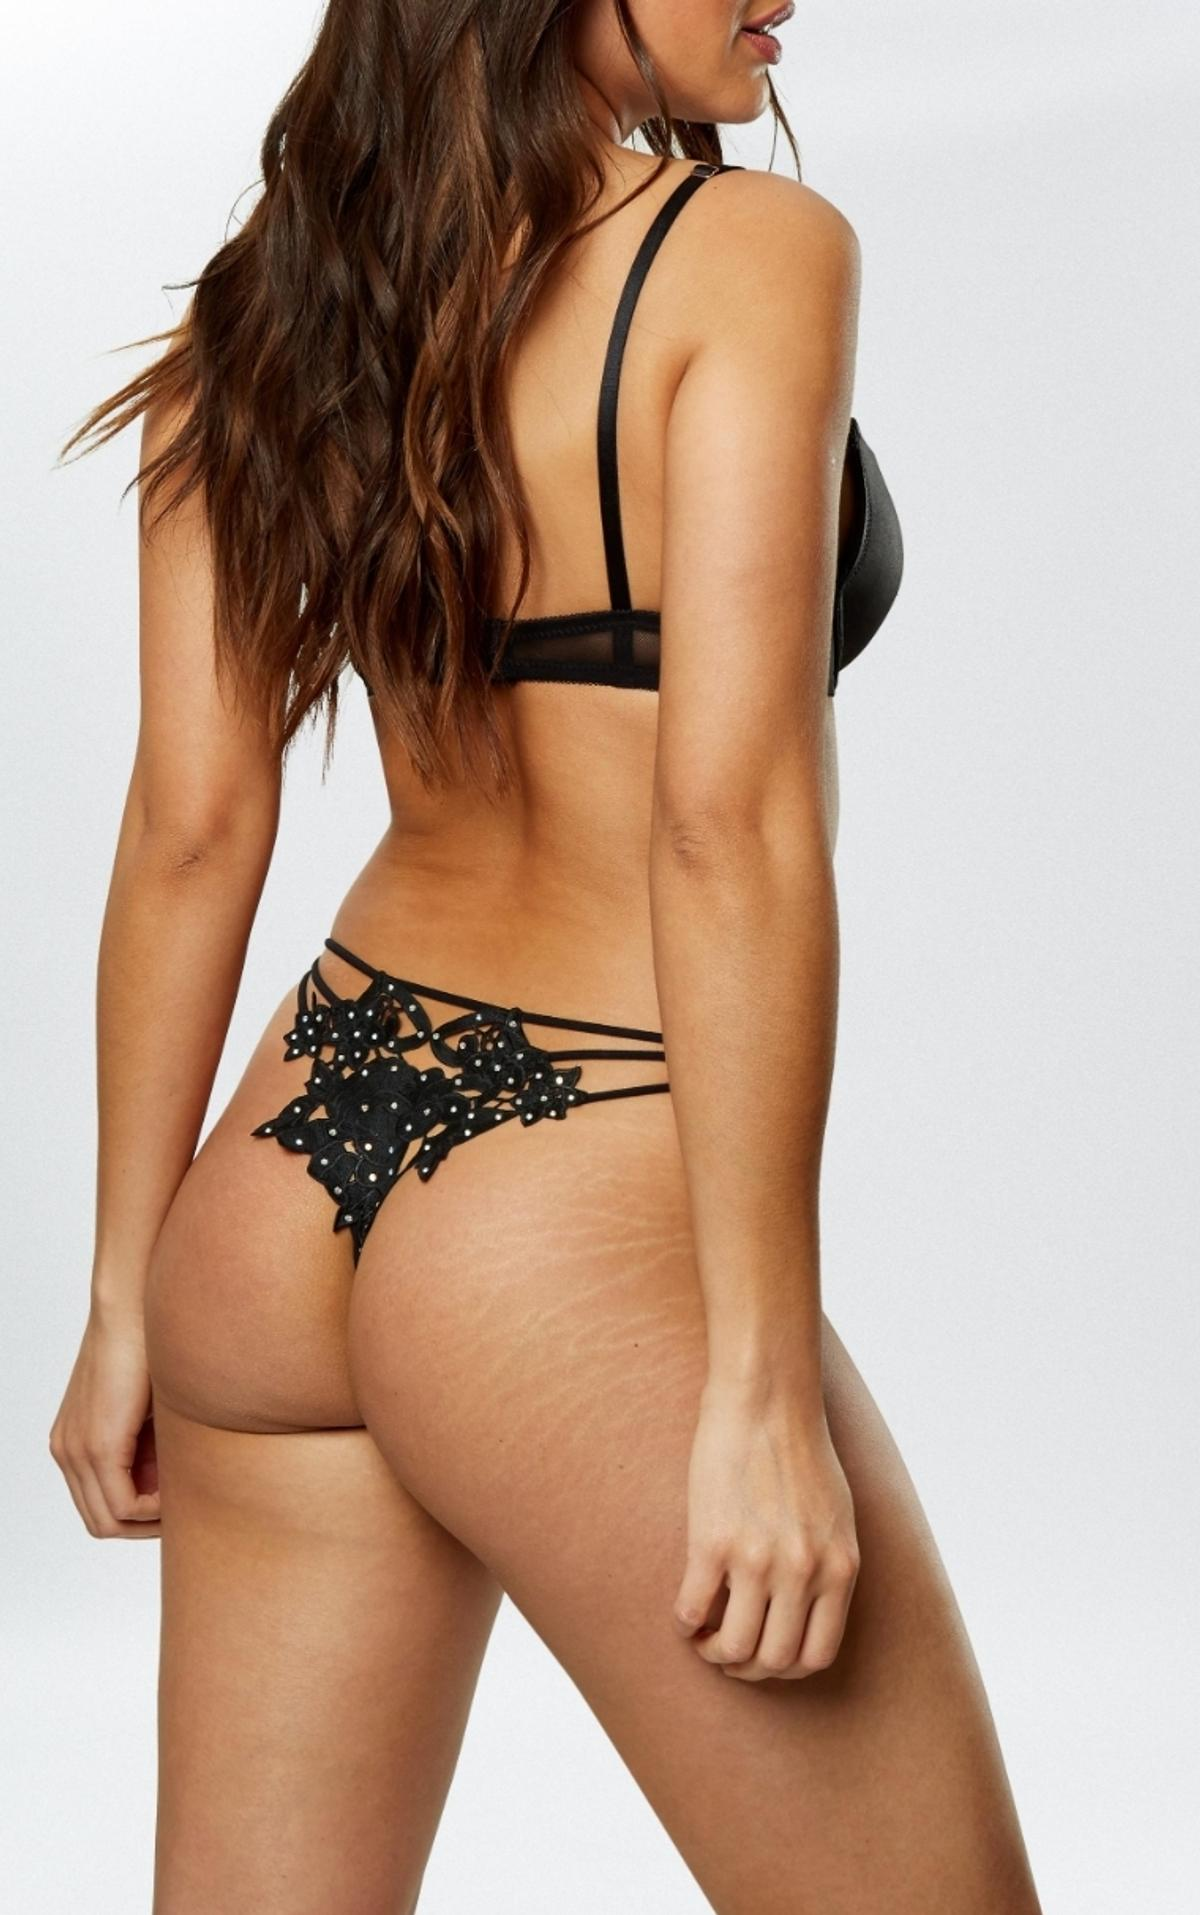 perder Acostado ciervo  Ann summers Ida crotchless thong in Stockport for £14.00 for sale | Shpock